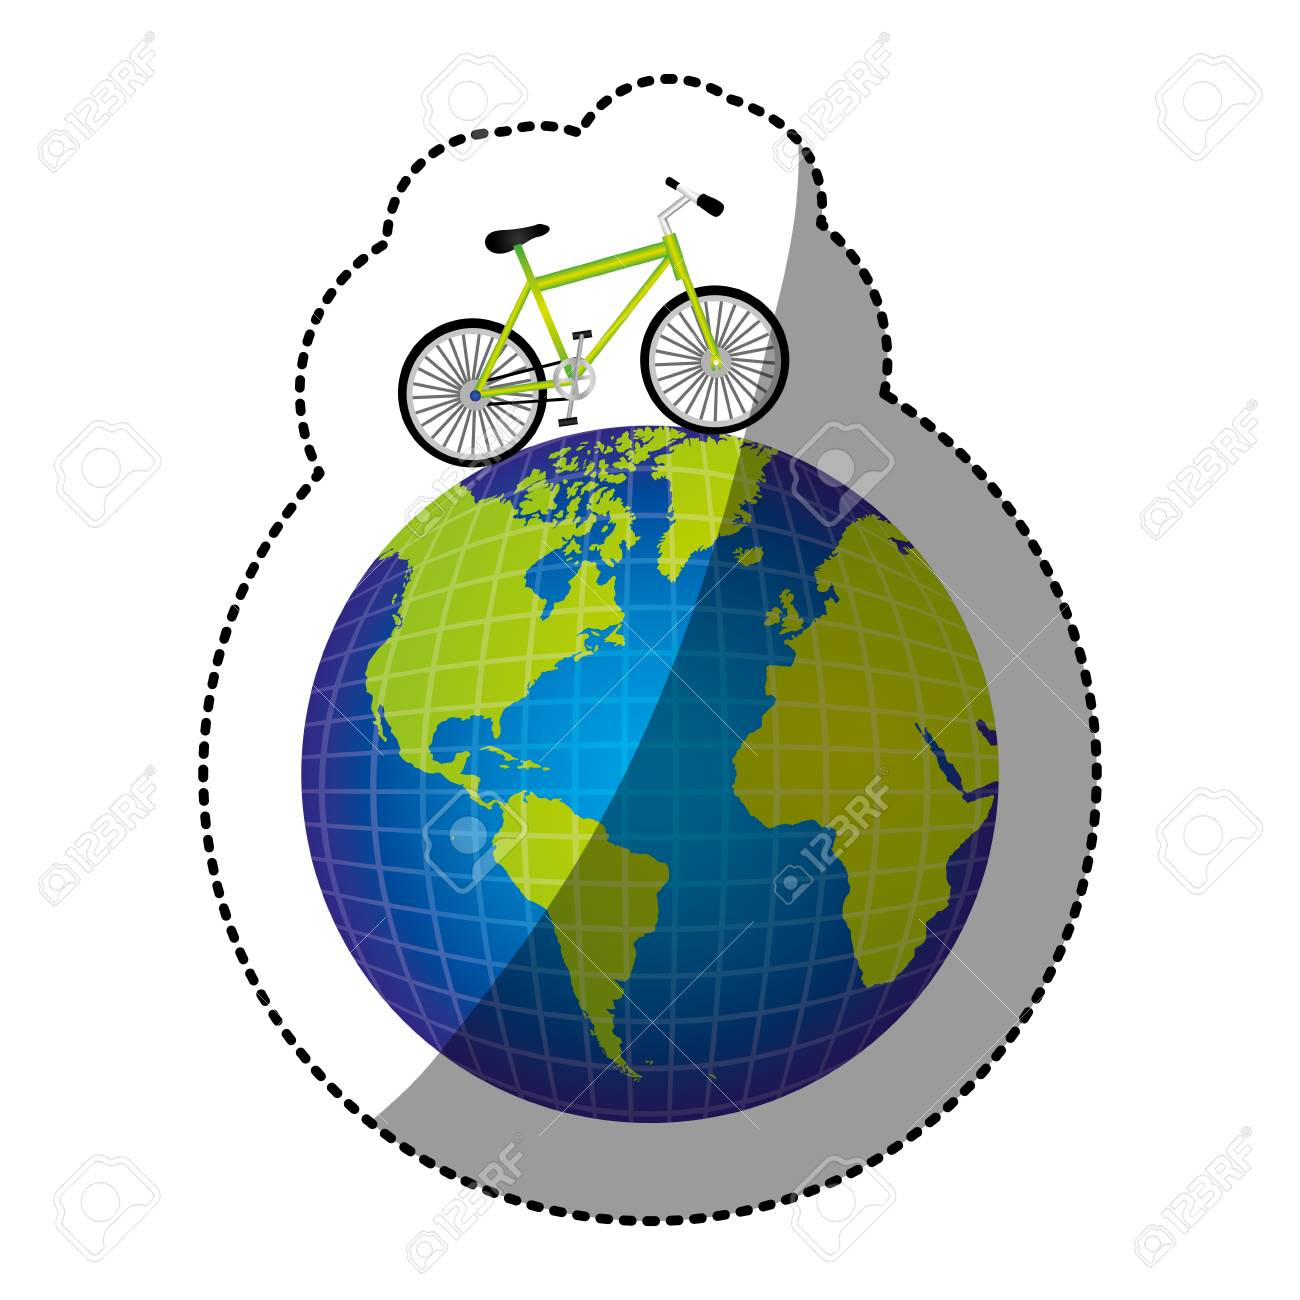 Sticker colorful silhouette of bicycle over the world map vector sticker colorful silhouette of bicycle over the world map vector illustration stock vector 74991649 gumiabroncs Images